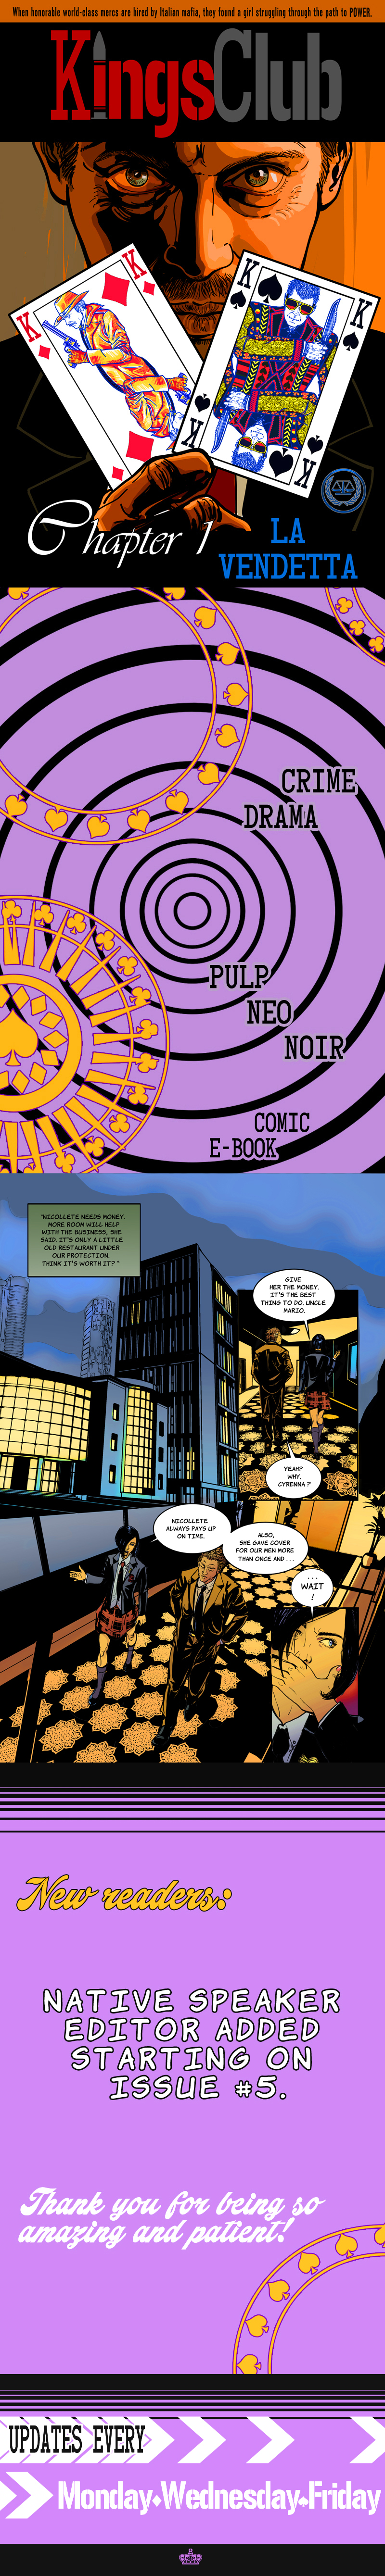 Kings Club Chapter 1 La Vendetta PG001